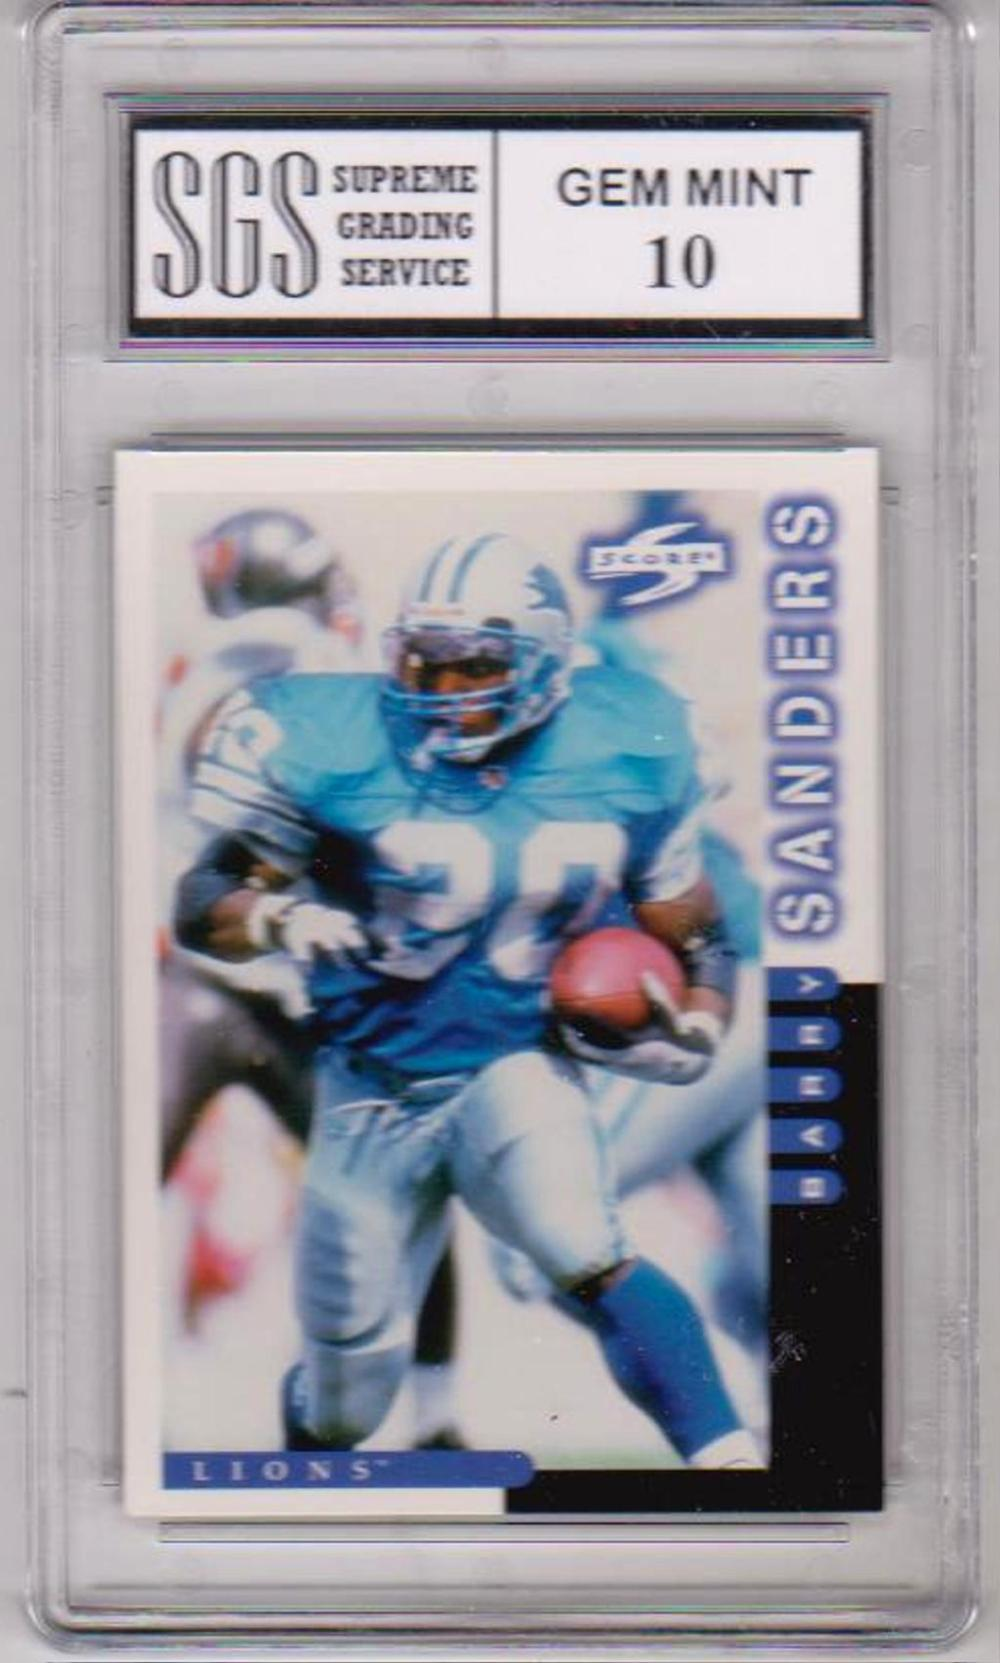 Graded Gem Mint 10 Barry Sanders 1998 Score #57 Card